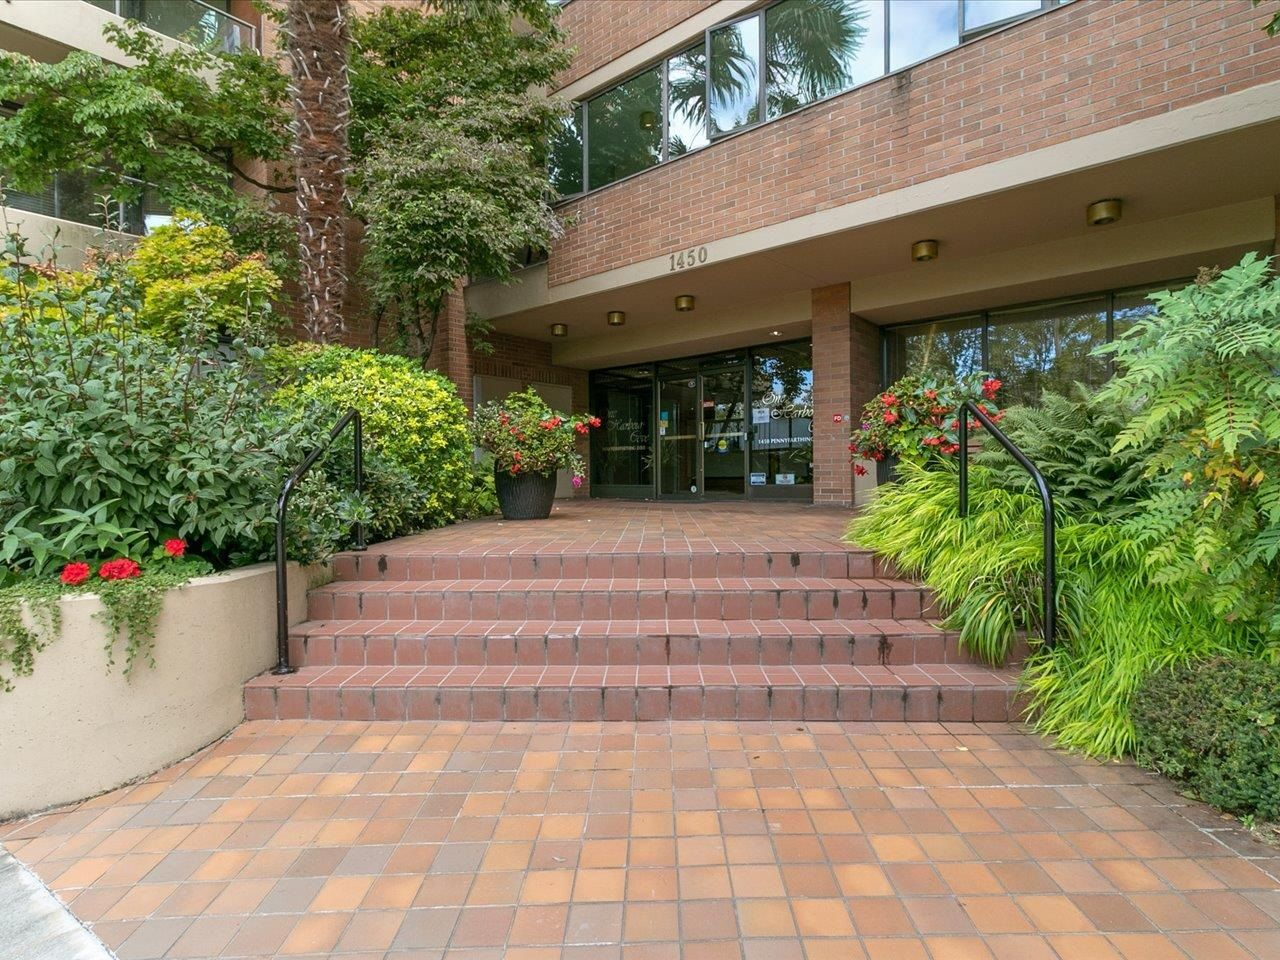 """Main Photo: 601 1450 PENNYFARTHING Drive in Vancouver: False Creek Condo for sale in """"Harbourside Cove"""" (Vancouver West)  : MLS®# R2616143"""